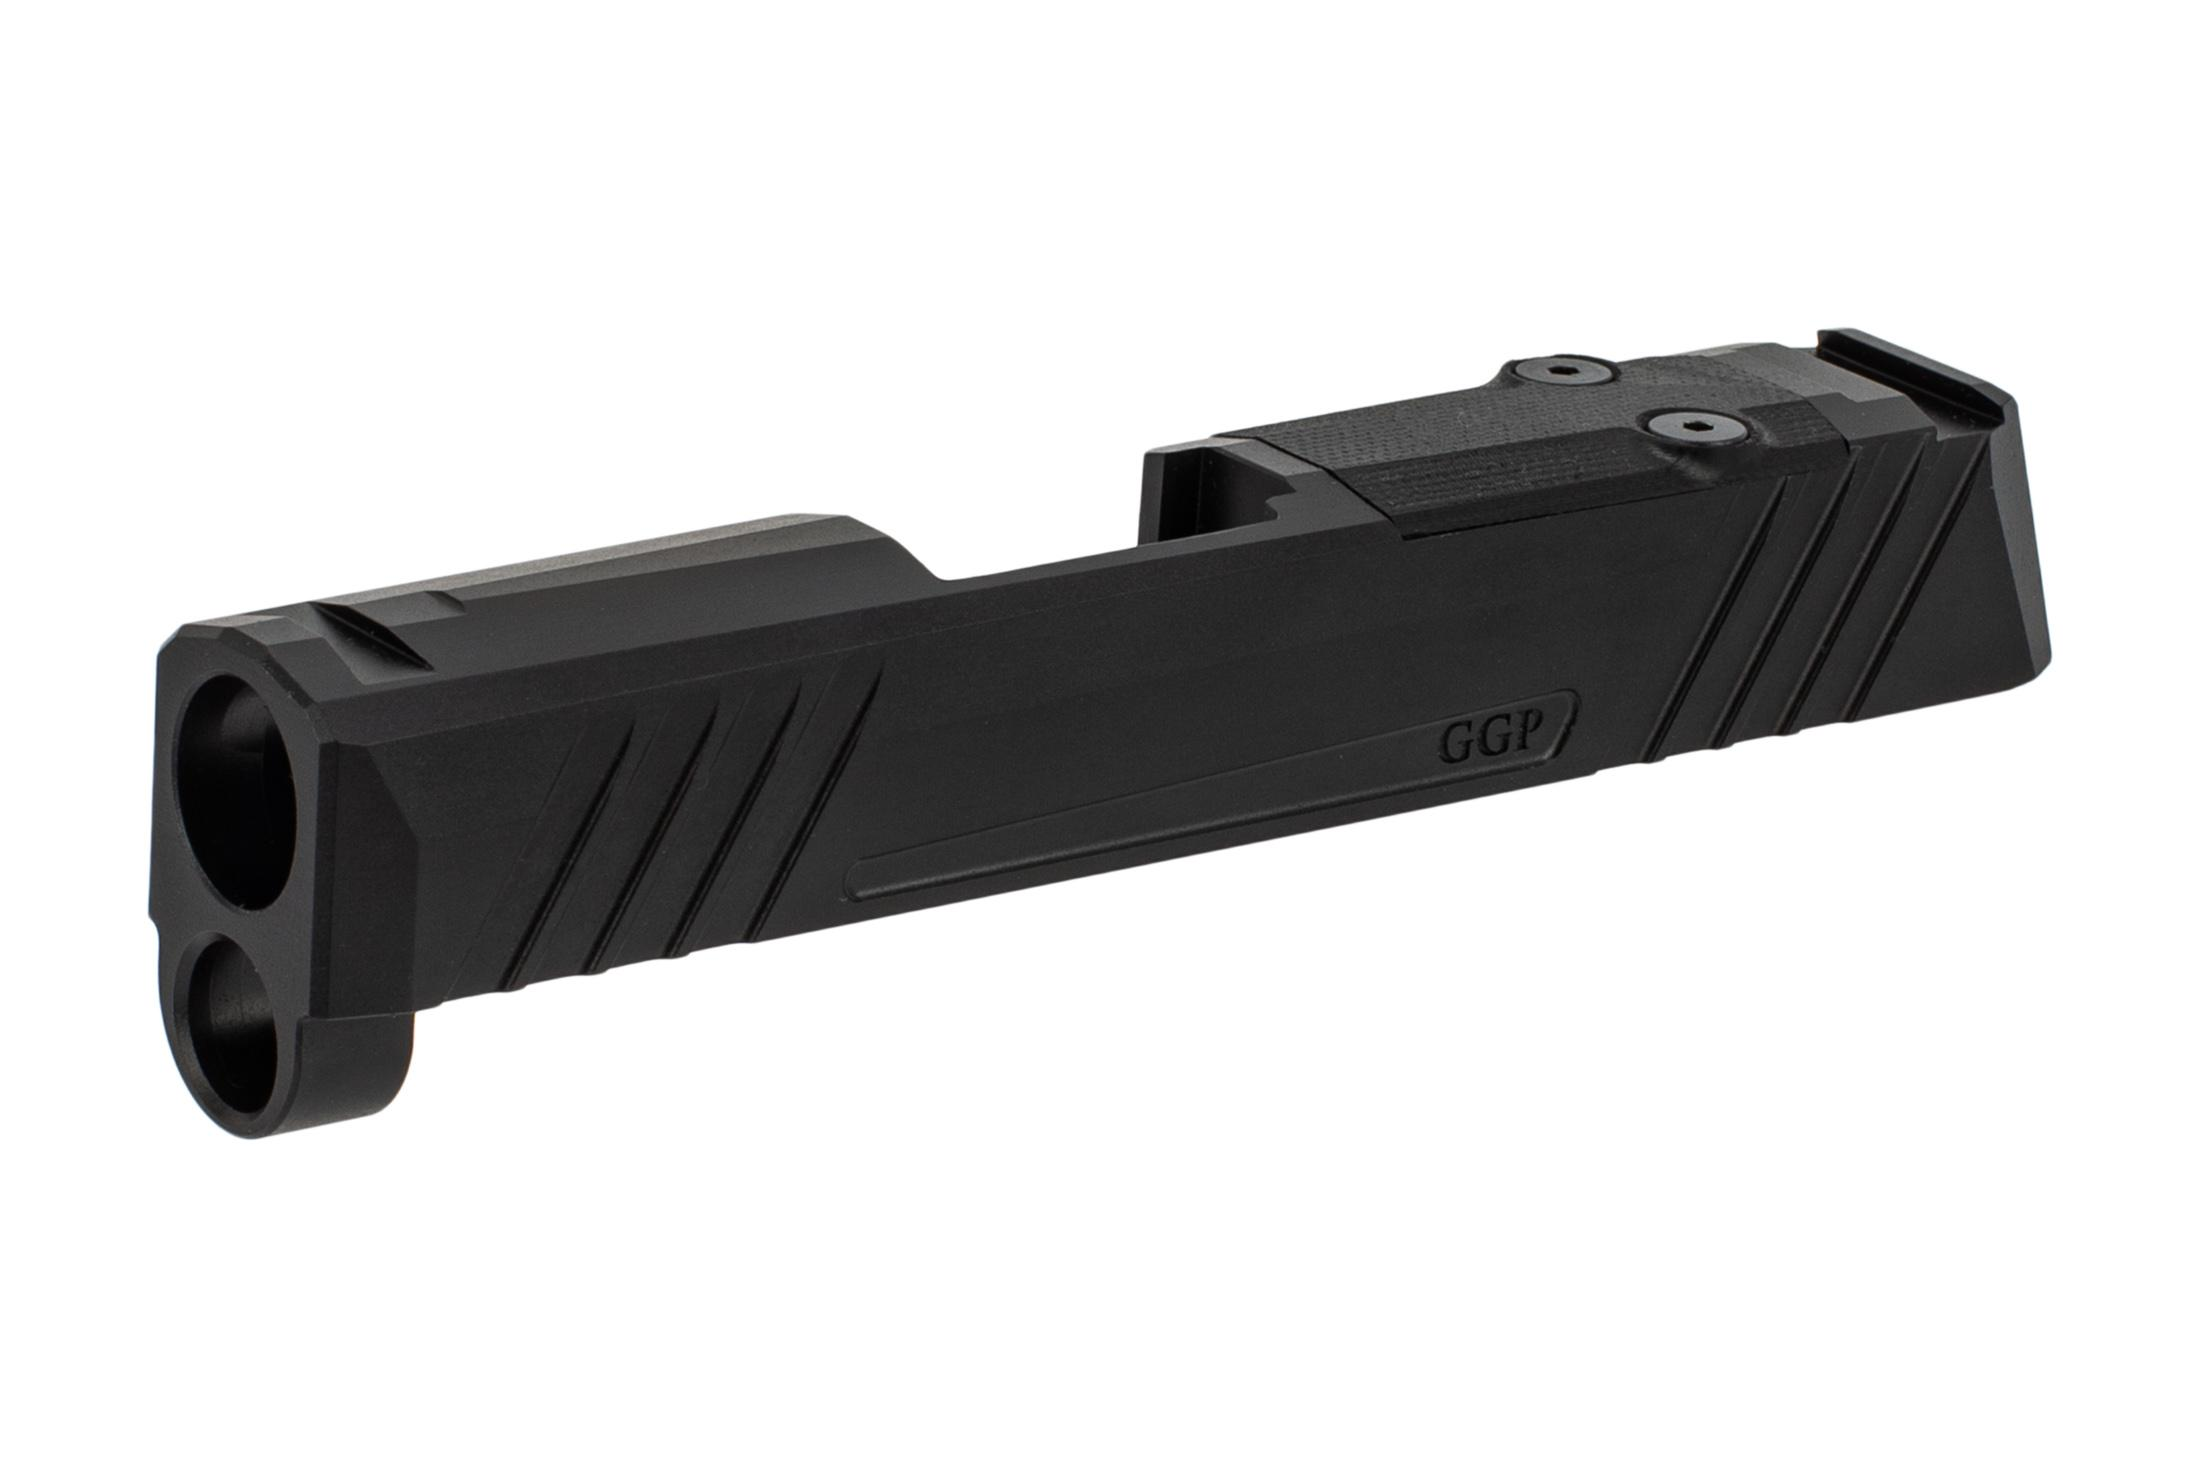 GGP365 Slide features aggressive front and rear slide serrations